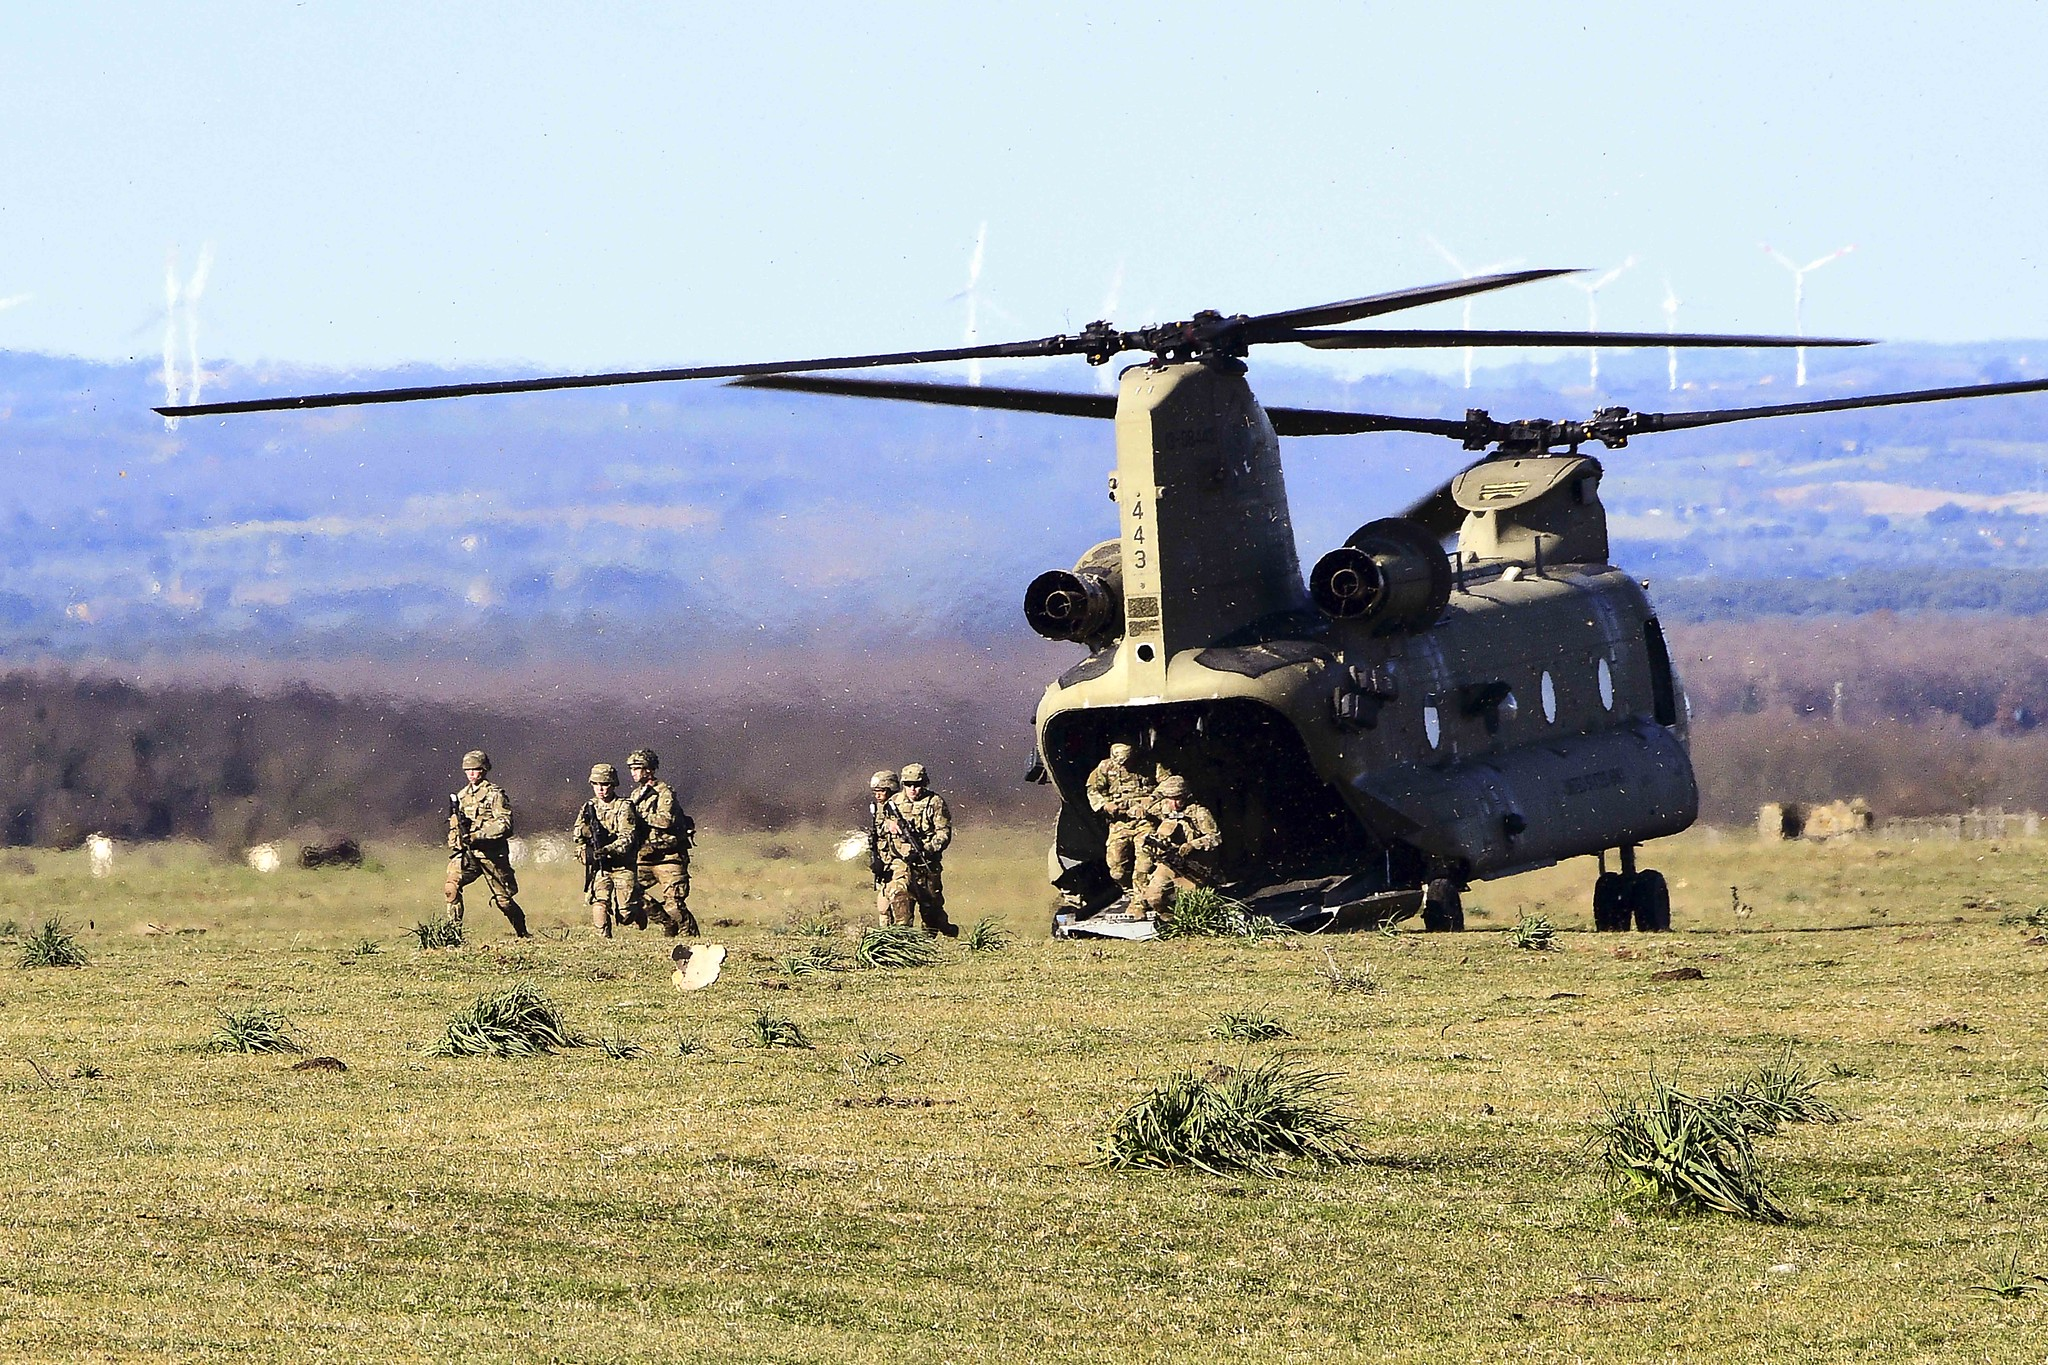 Soldiers conduct a simulated air assault from an Army CH-47 Chinook during training at Monte Romano Training Area, Italy, Jan. 27, 2021. (Elena Baladelli/Army)